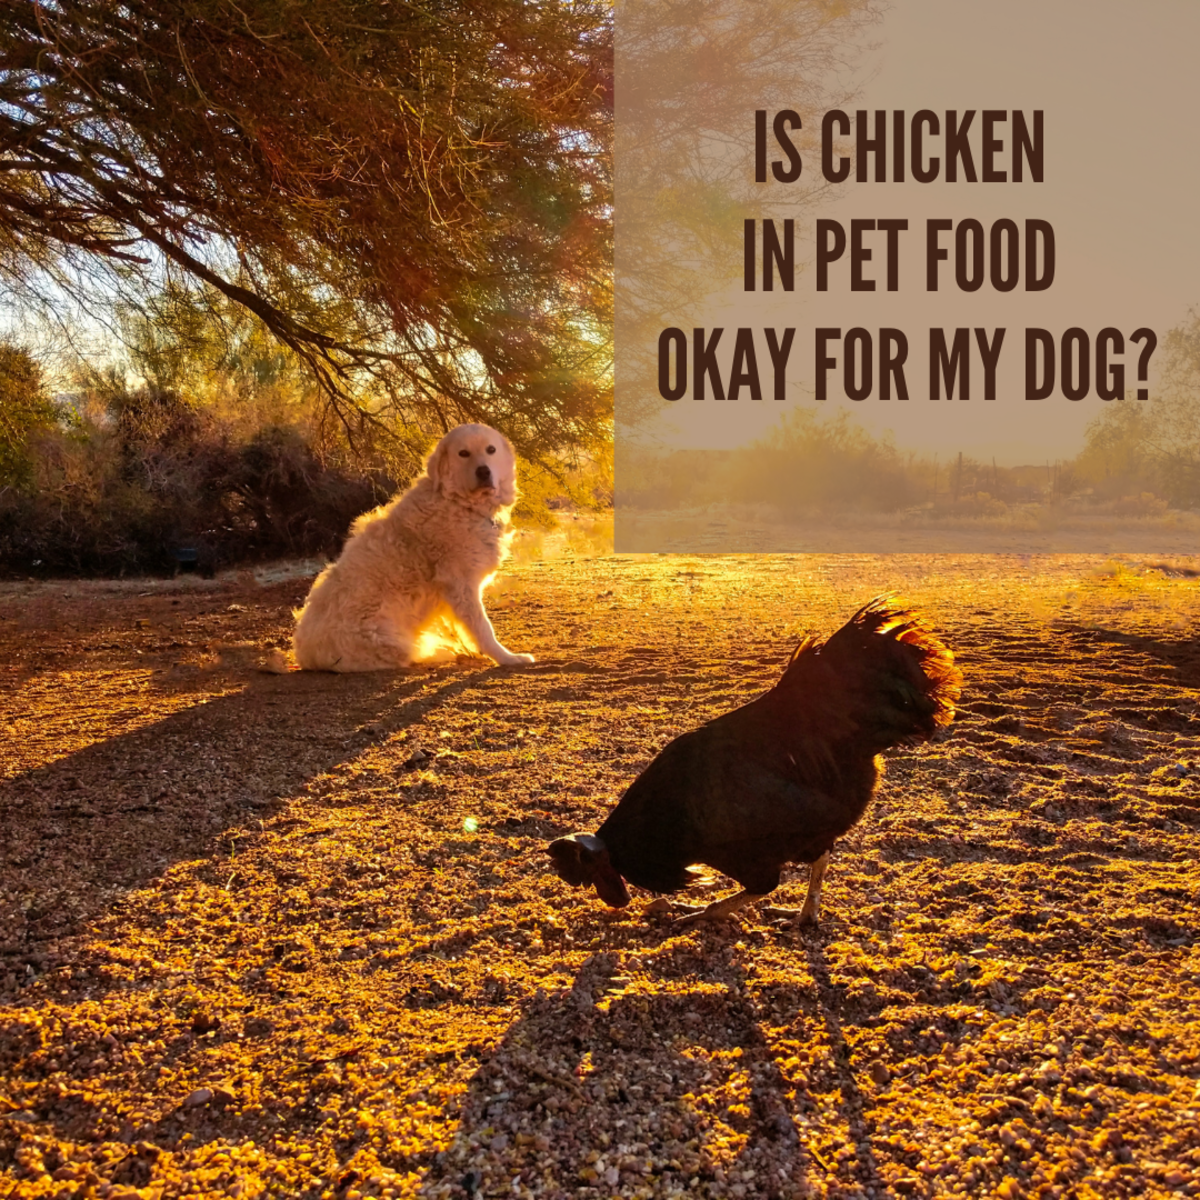 Dogs love chickens—but are they good for them?